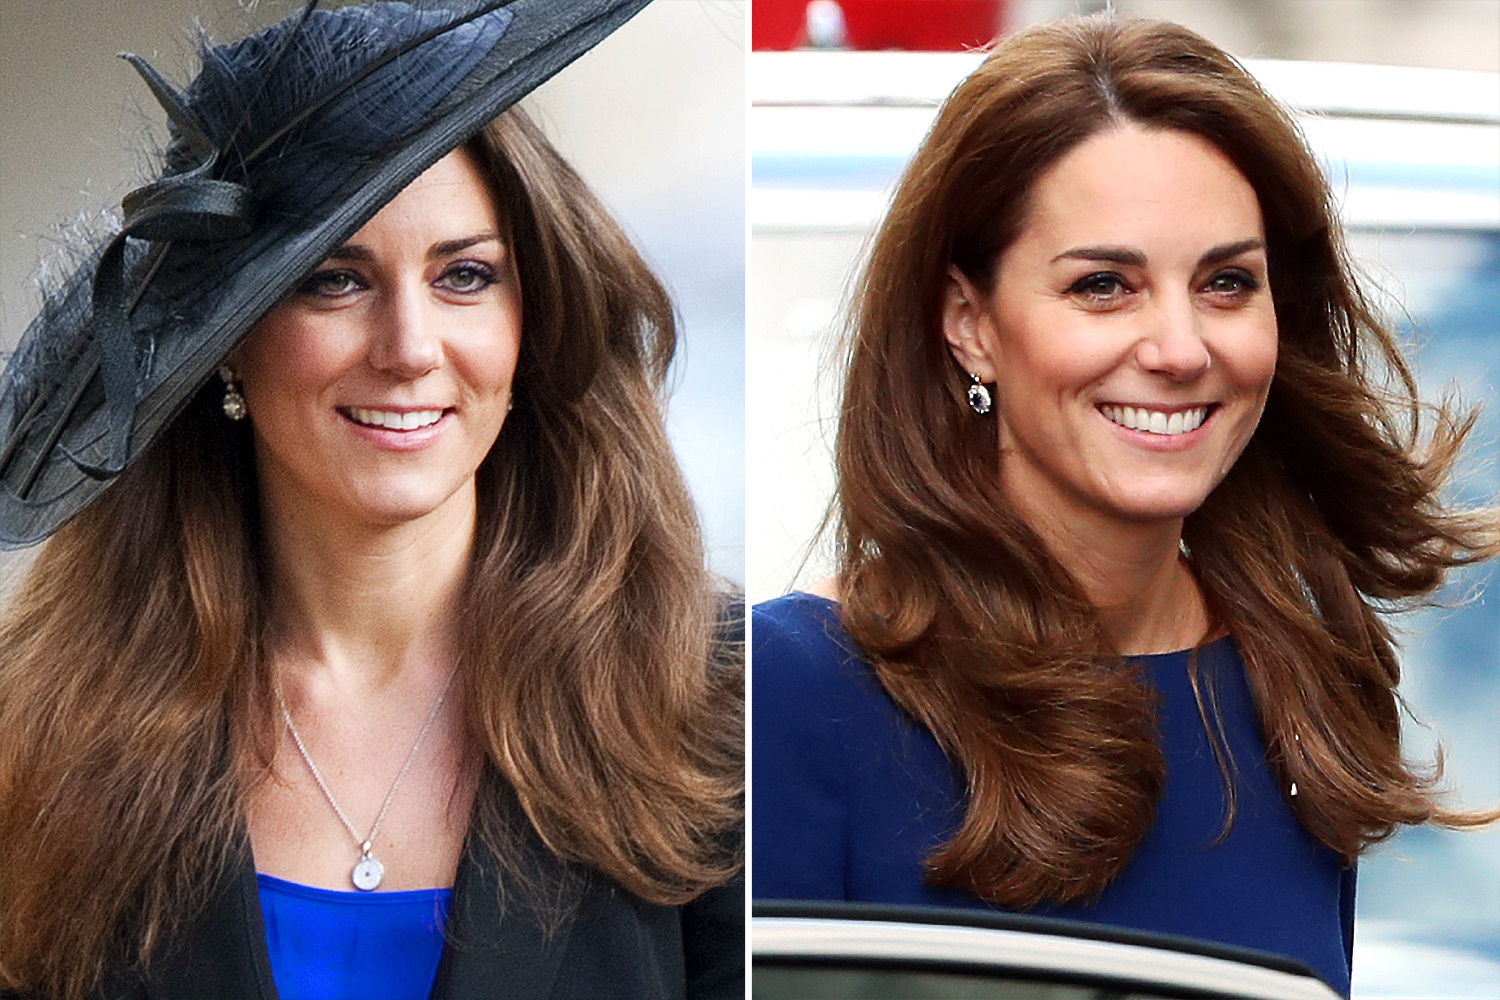 Kate Middleton in 2009 and 2019